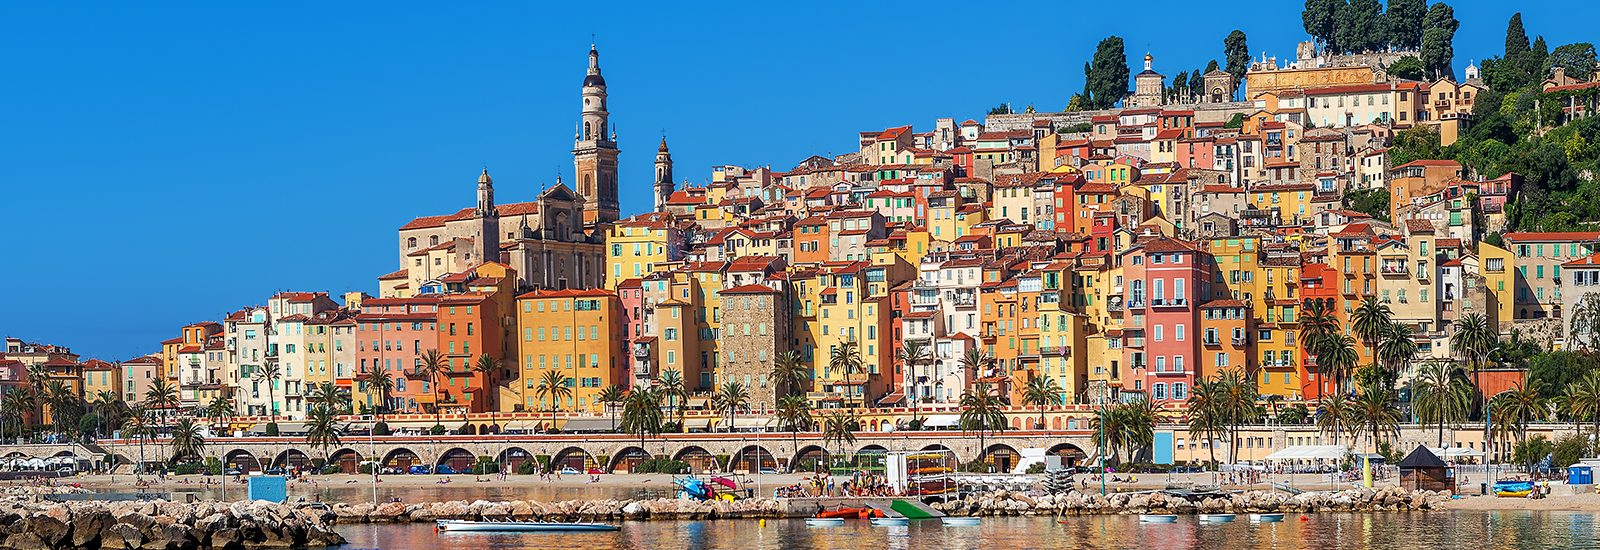 French Riviera town of Menton on the water